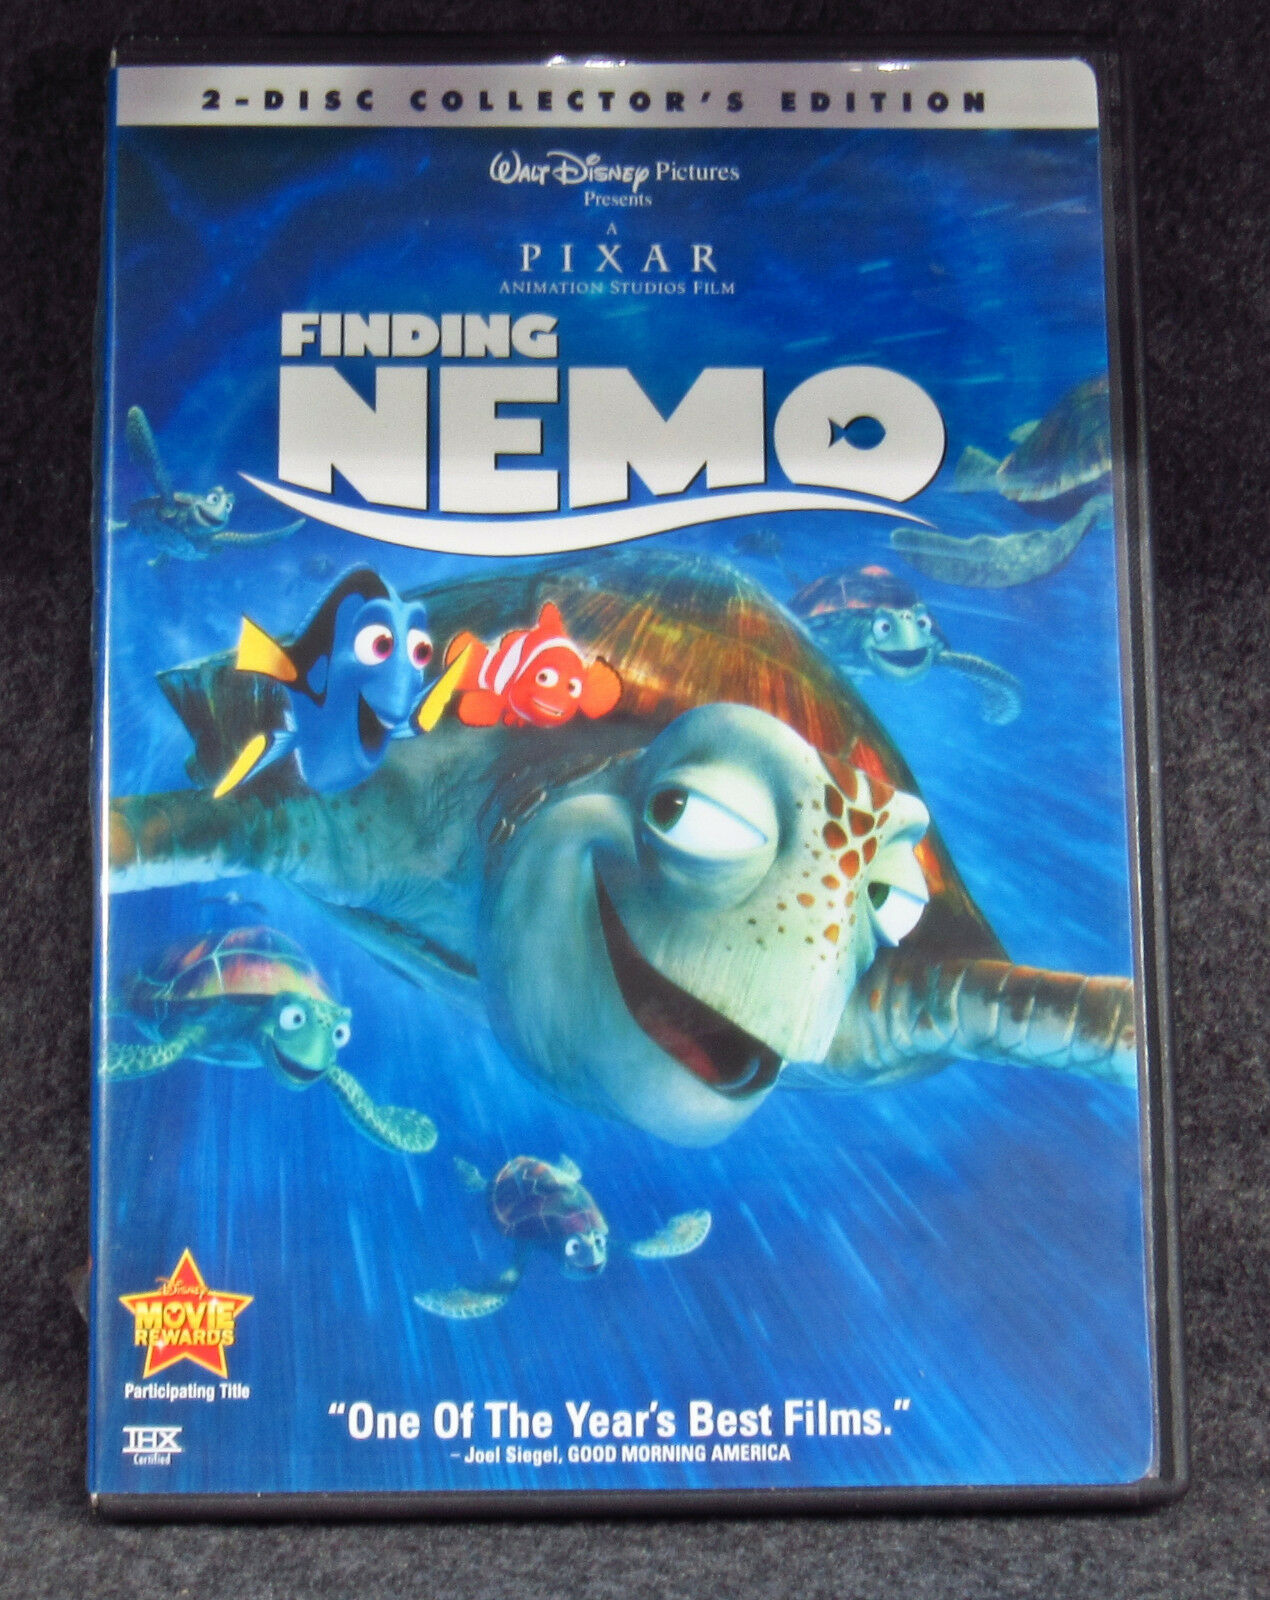 Finding Nemo ~ DVD ~ 2 Disc Collector's Edition